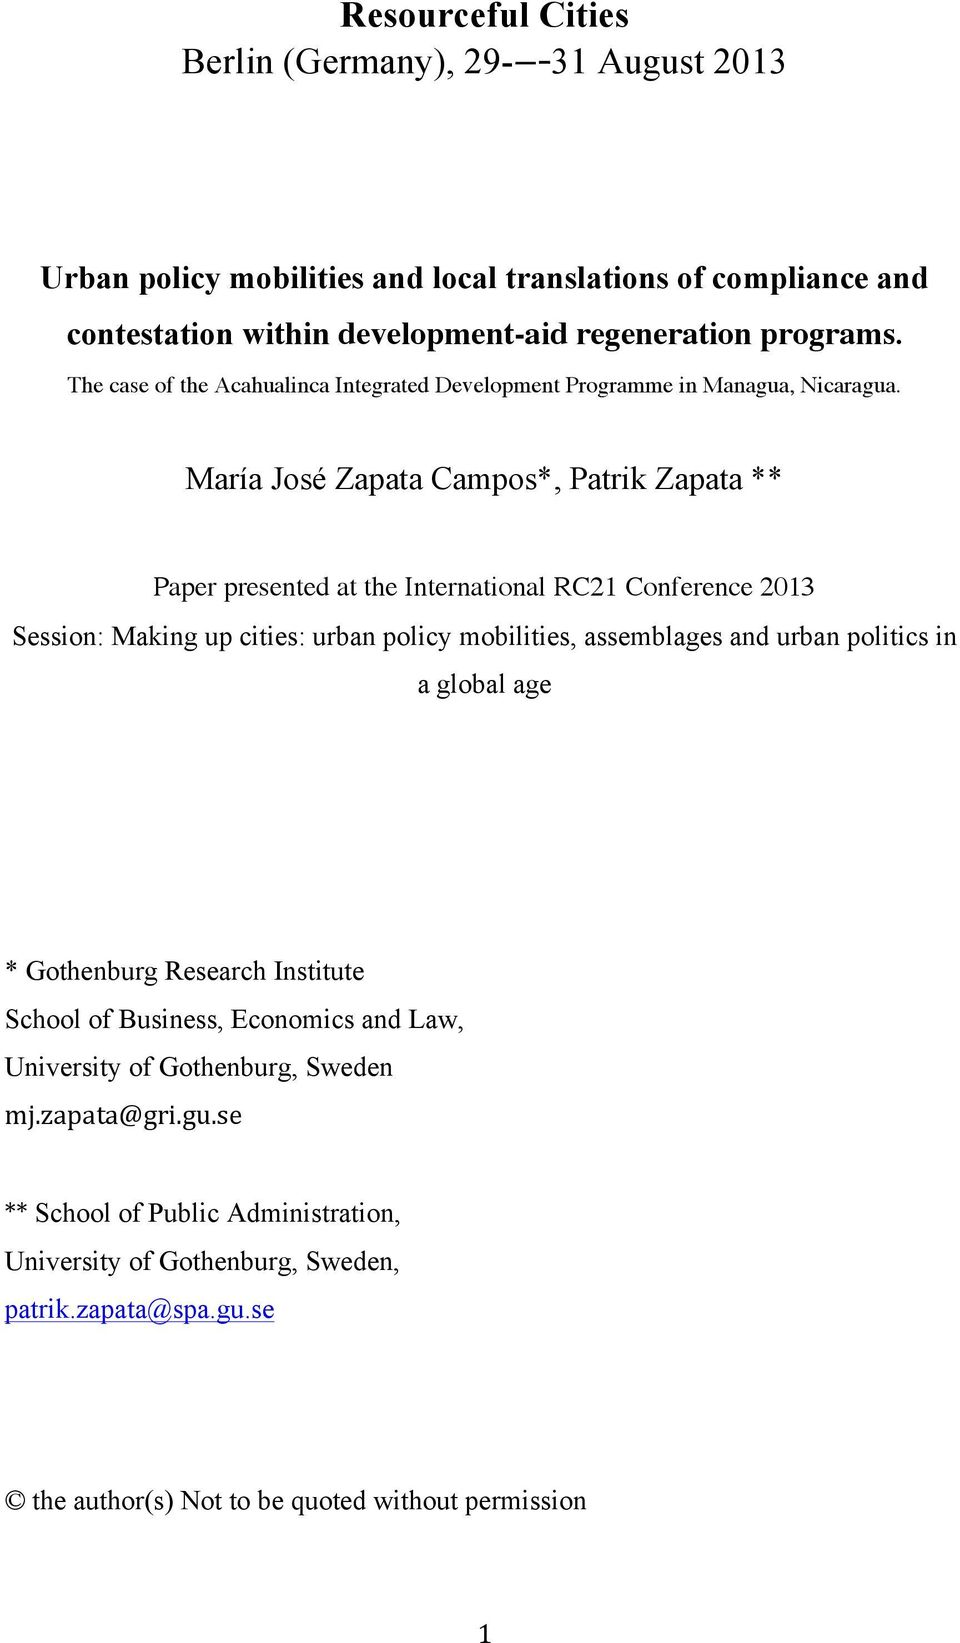 María José Zapata Campos*, Patrik Zapata ** Paper presented at the International RC21 Conference 2013 Session: Making up cities: urban policy mobilities, assemblages and urban